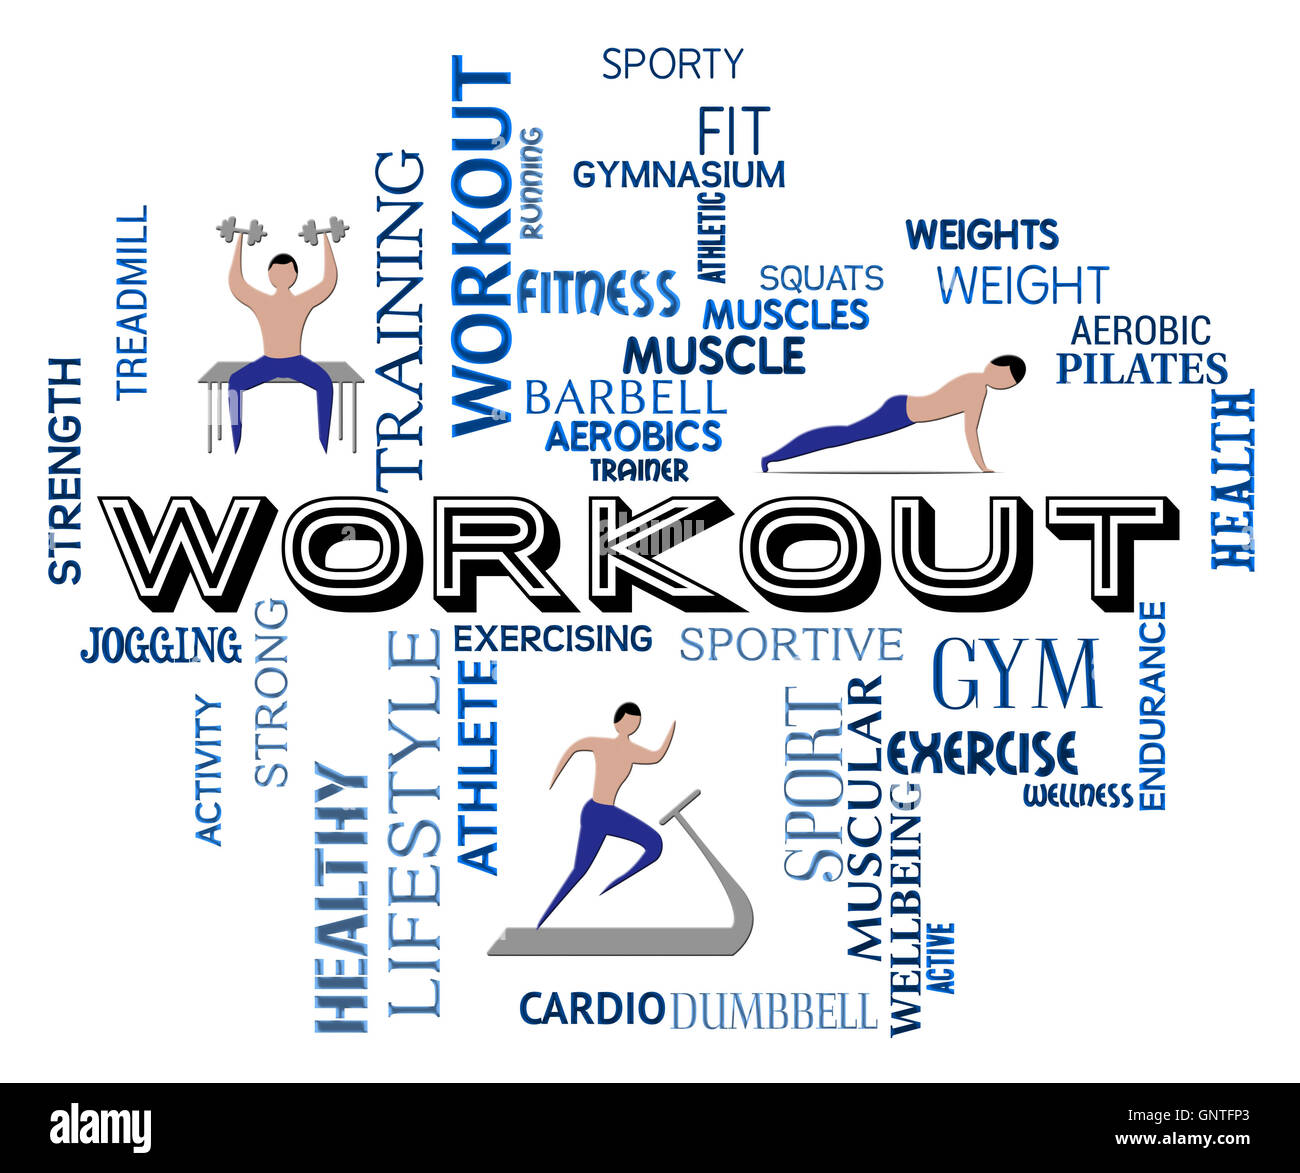 77d00022b5f Workout Fitness Meaning Getting Fit And Training Stock Photo ...